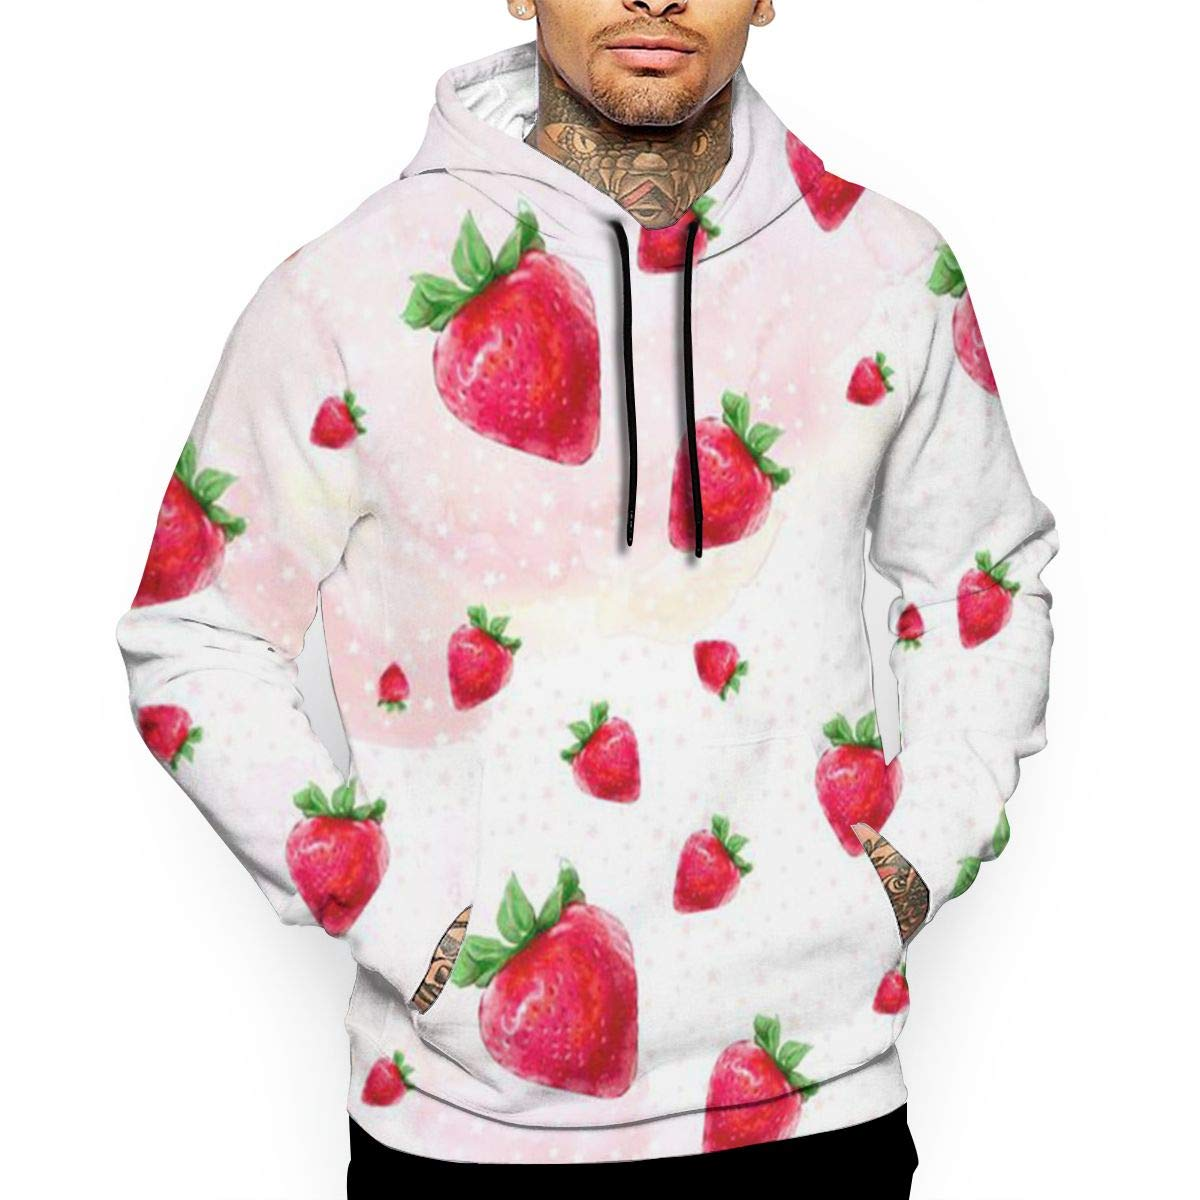 Strawberries T-Shirt Hooded with A Pocket Rope Hat Customization Fashion Novelty 3D Mens